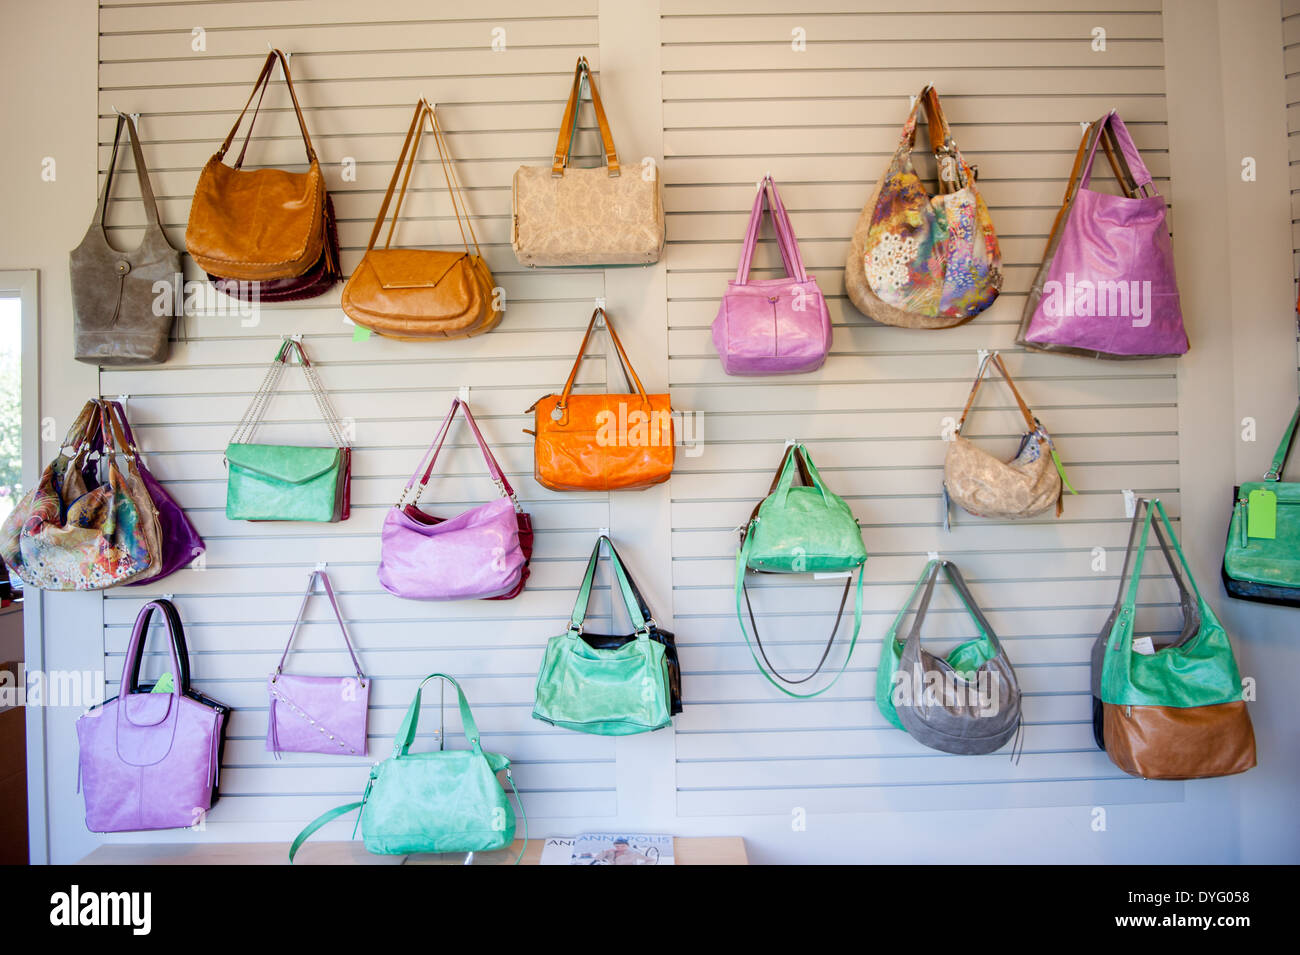 Wall of bags Annapolis Junction MD - Stock Image